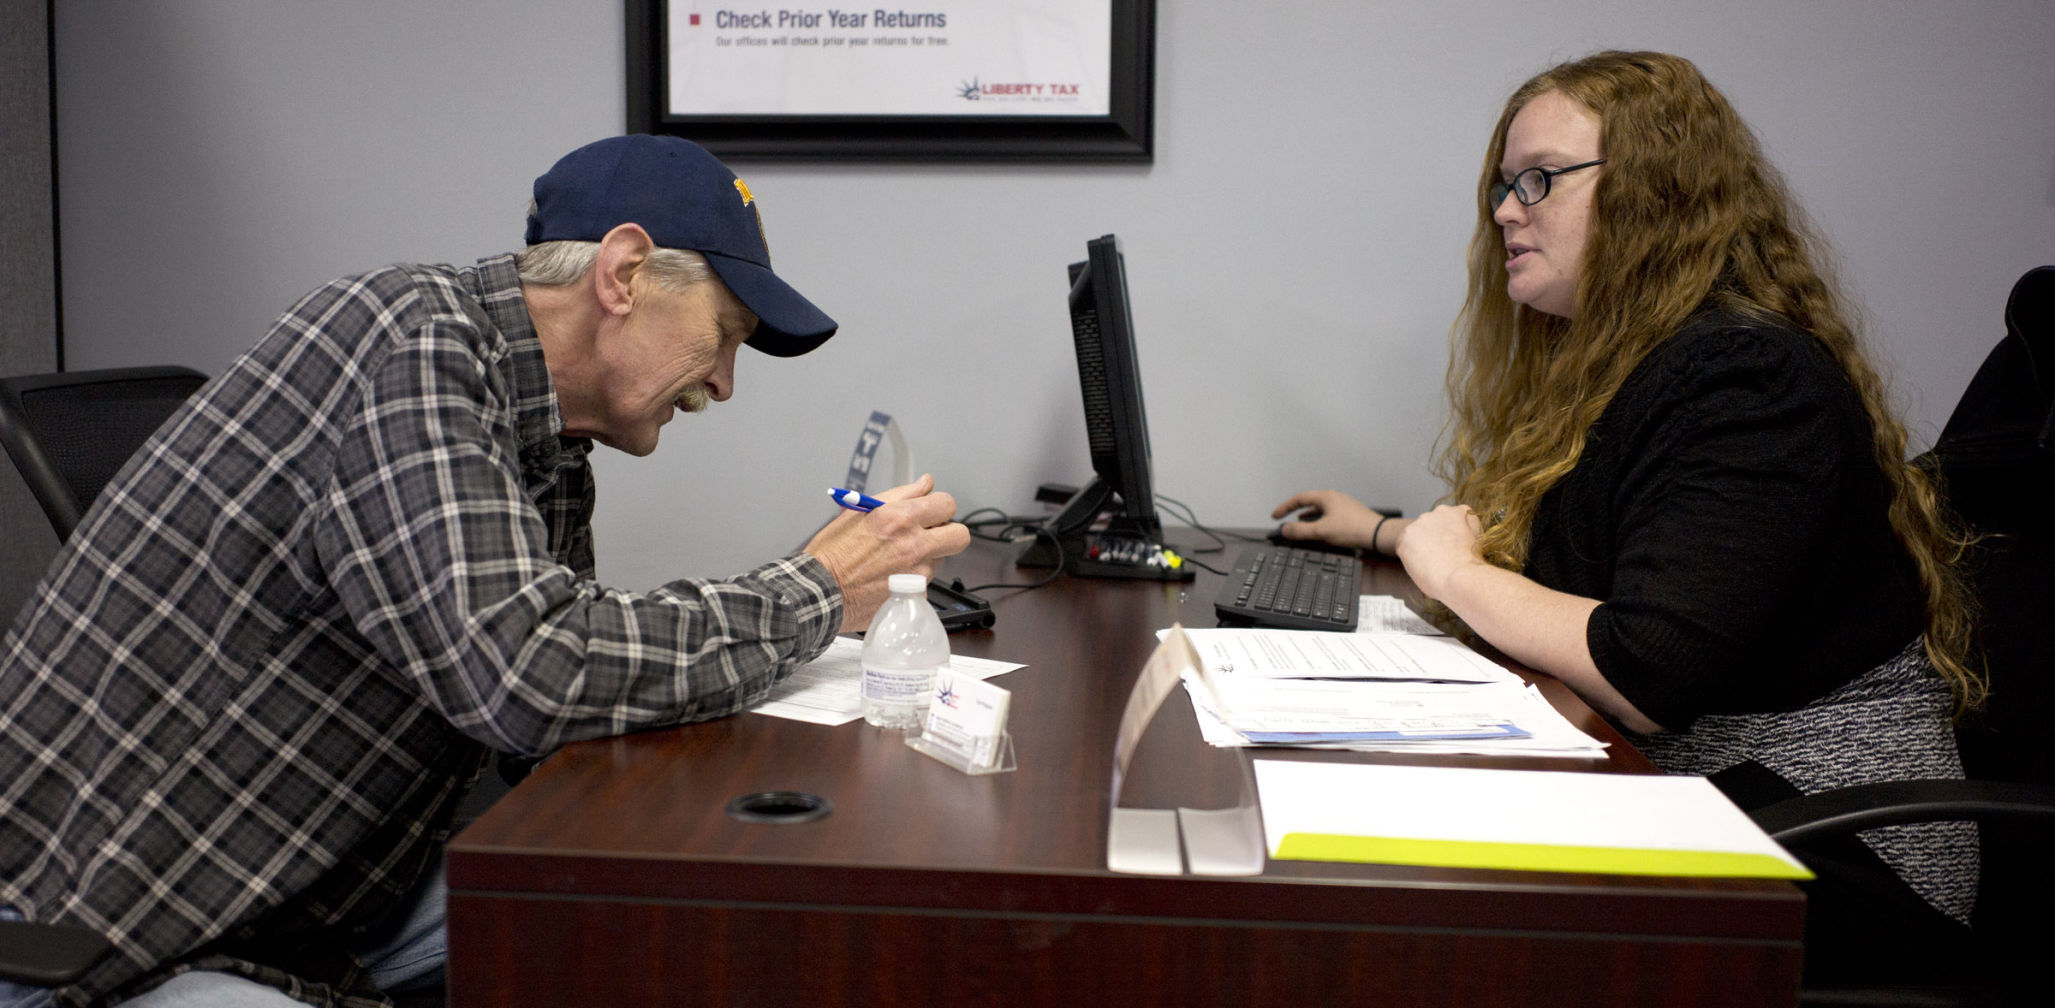 Even with an extra day, last-minute filers converge on tax preparation offices | Winston Salem Journal